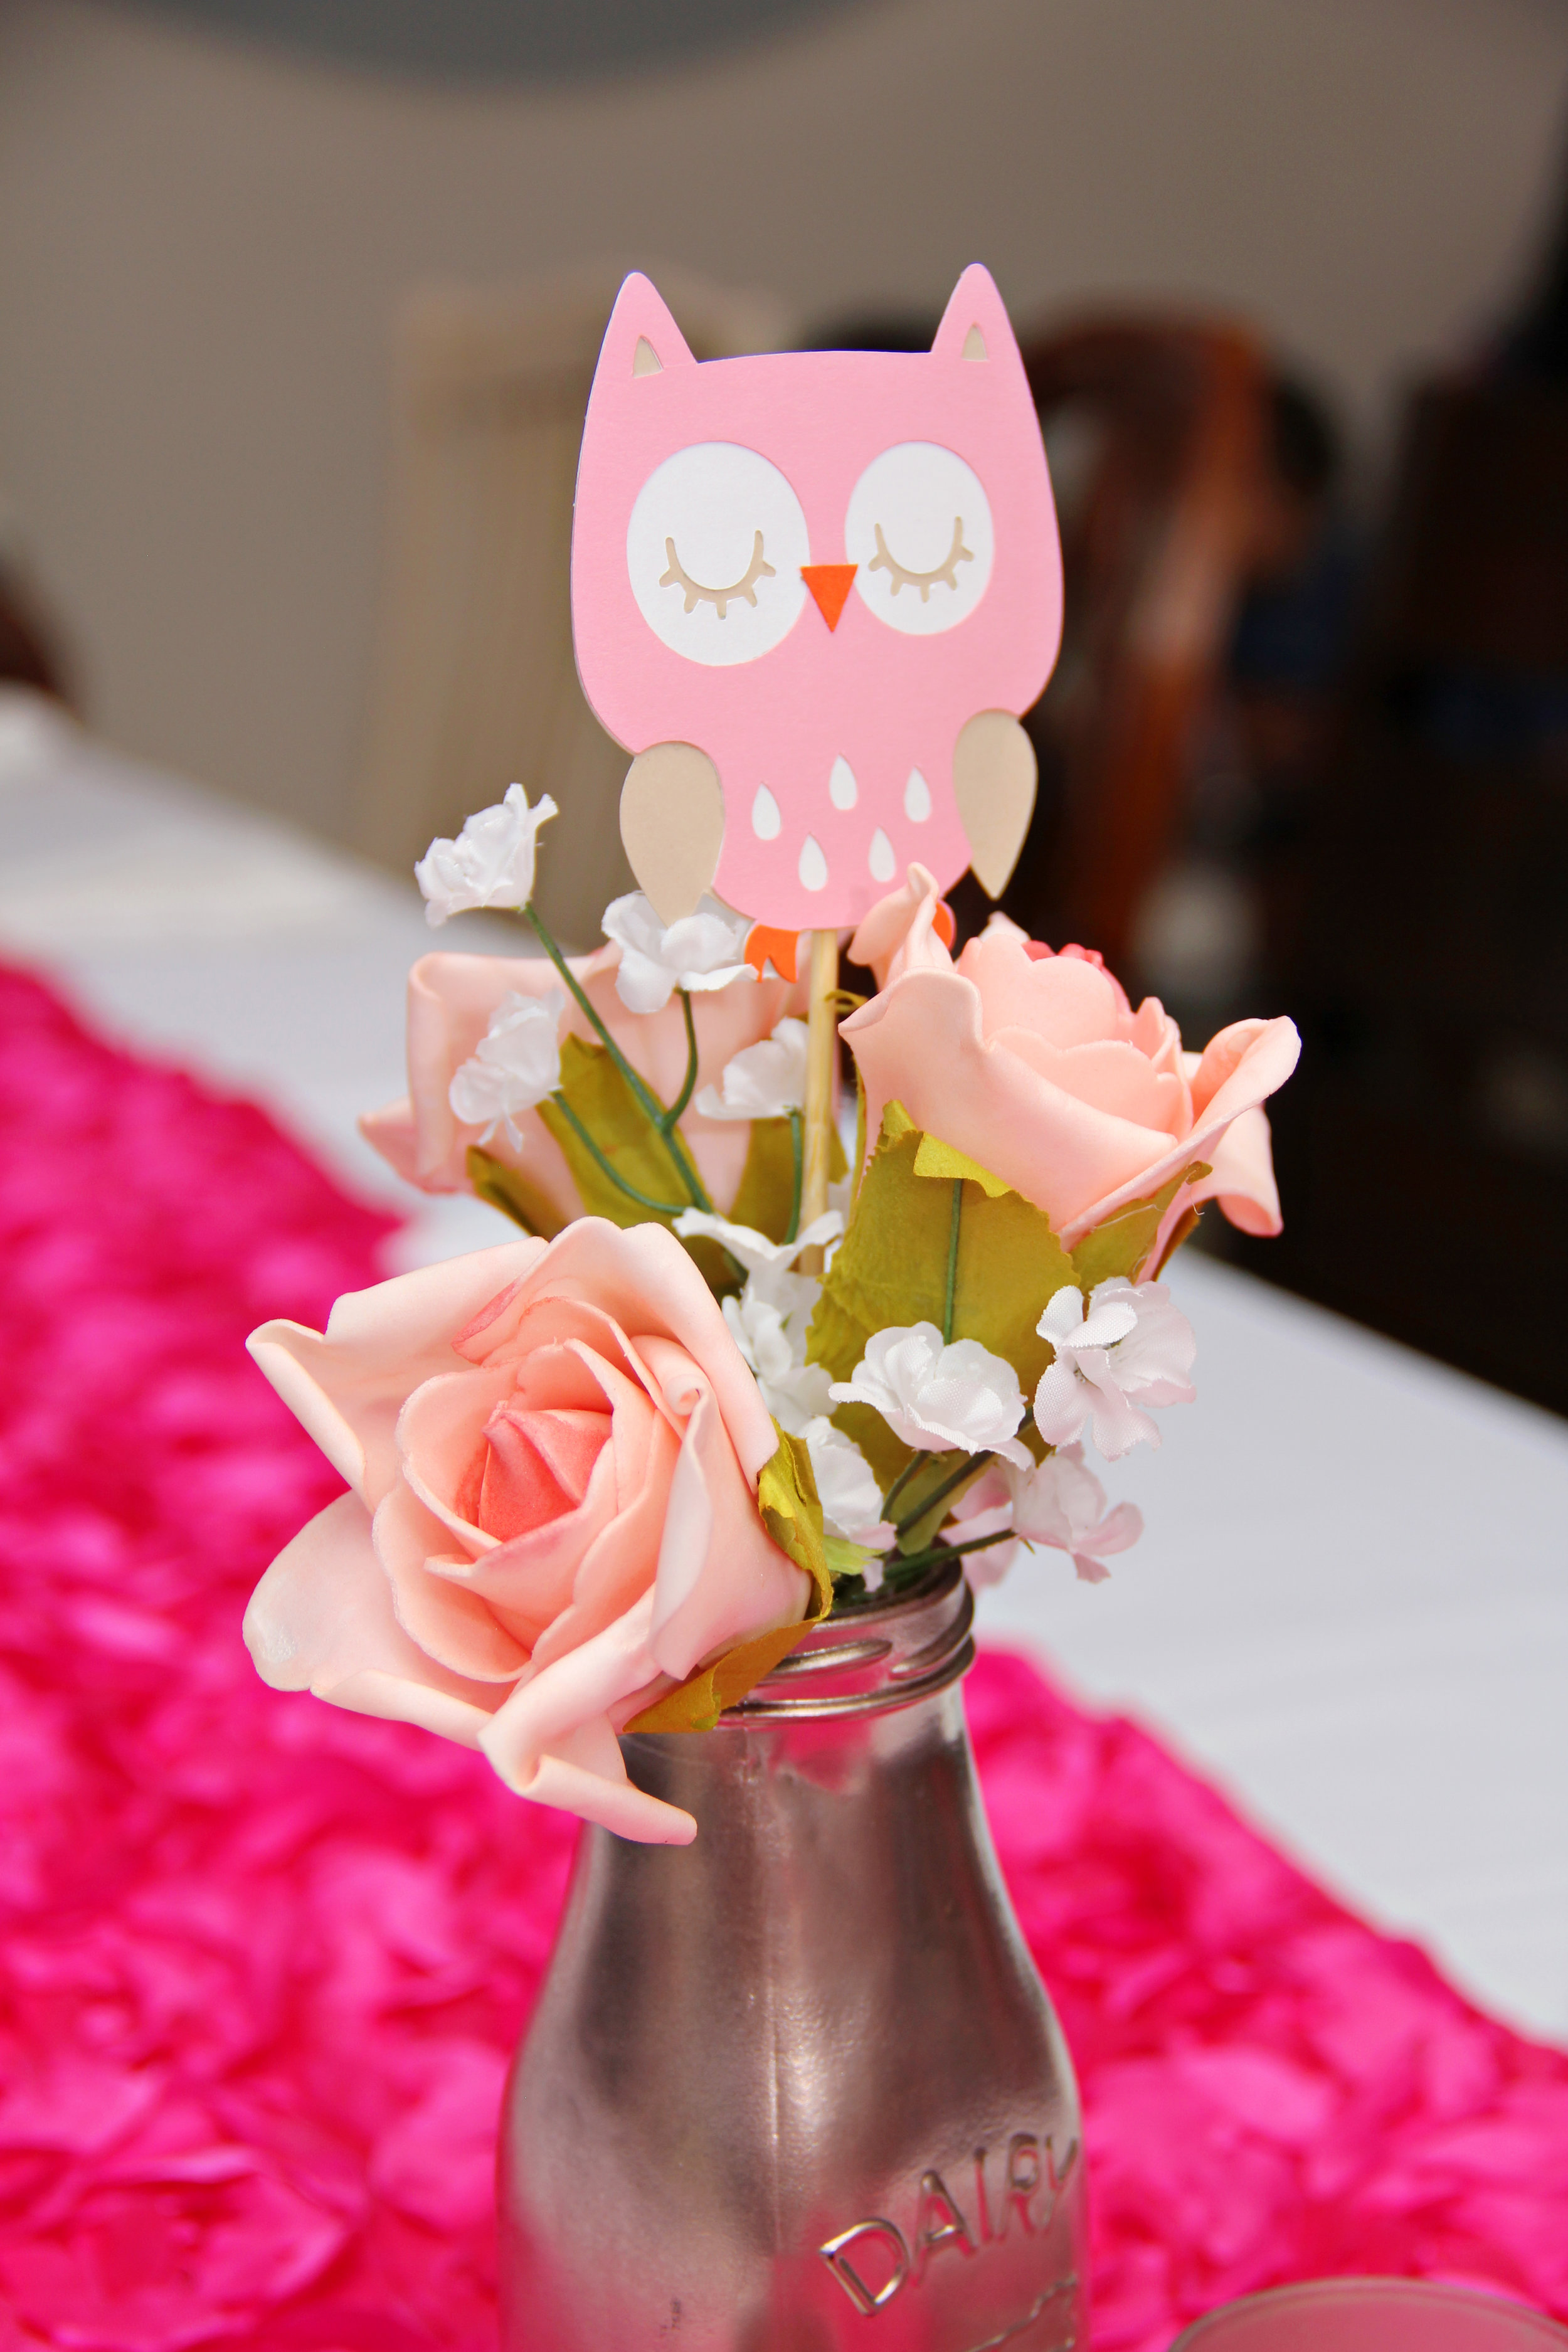 Scar-Vita-Photography-2016-Copyright-Owl-Baby-Shower-Events-By-Cat-21.JPG